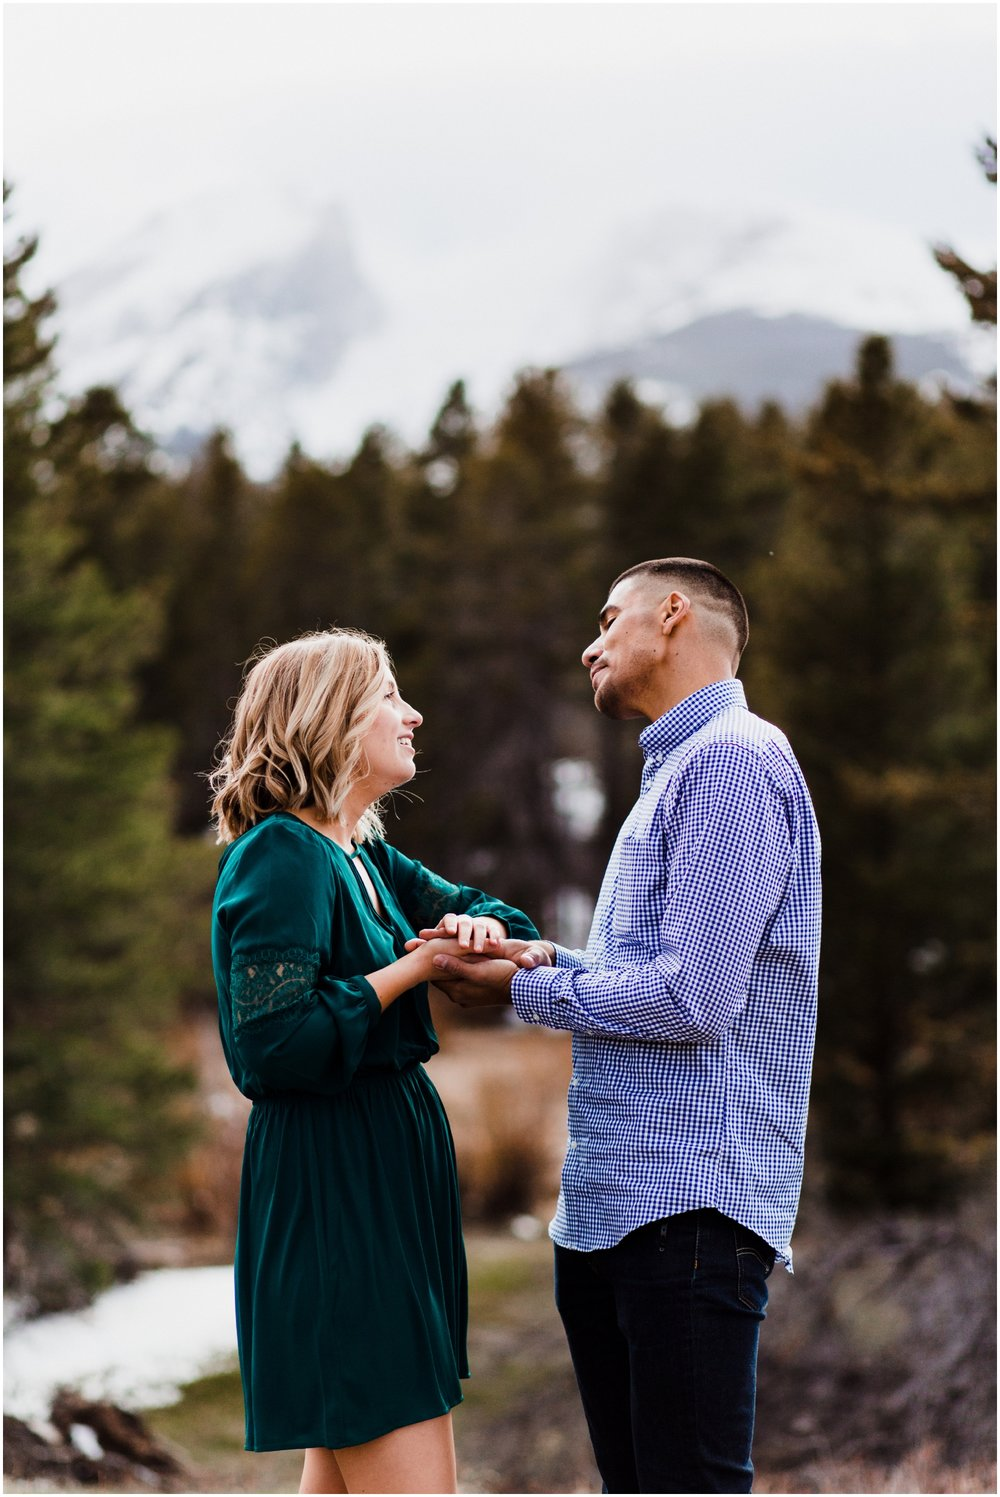 rocky-mountain-national-park-elopement-sprague-lake-colorado-adventure-wedding-photographer_taylor-powers_92.jpg